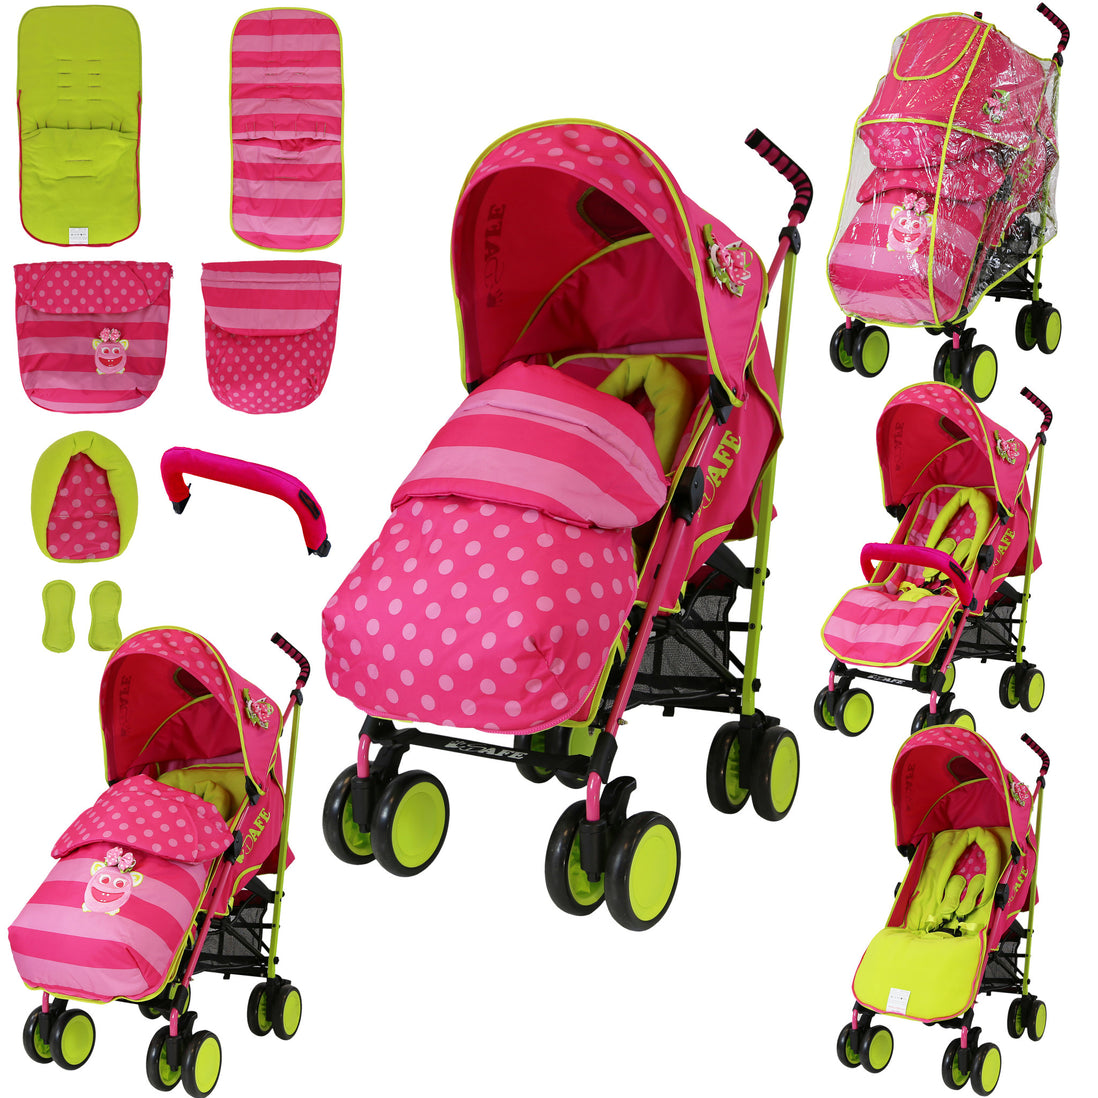 SPECIAL OFFER iSafe Stroller LiL Friend Complete Footmuff Head Hugger Raincover